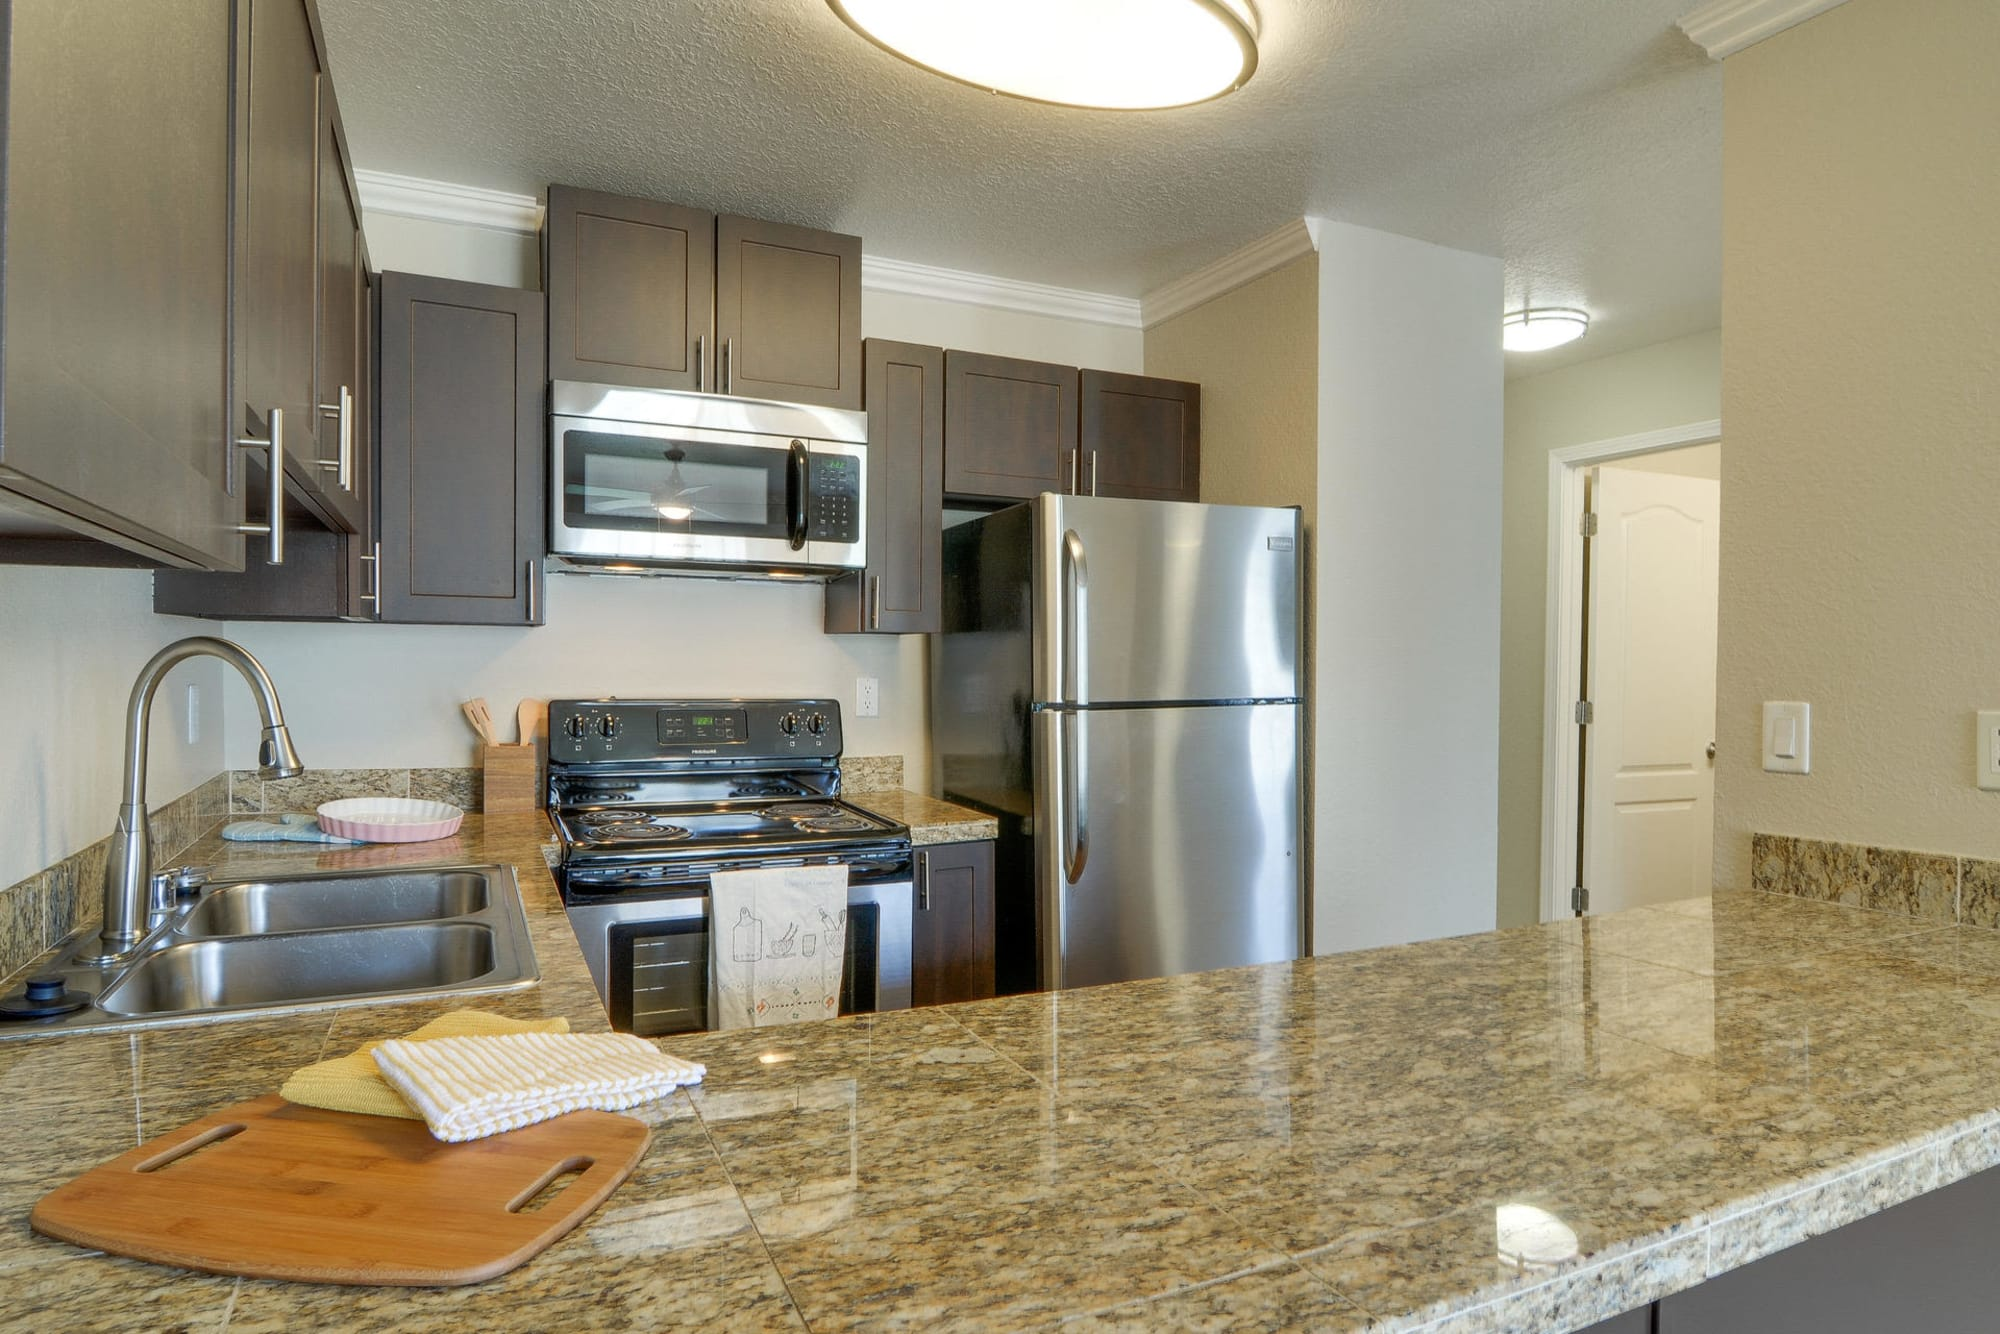 Granite countertops in kitchens at apartments in Carriage House Apartments